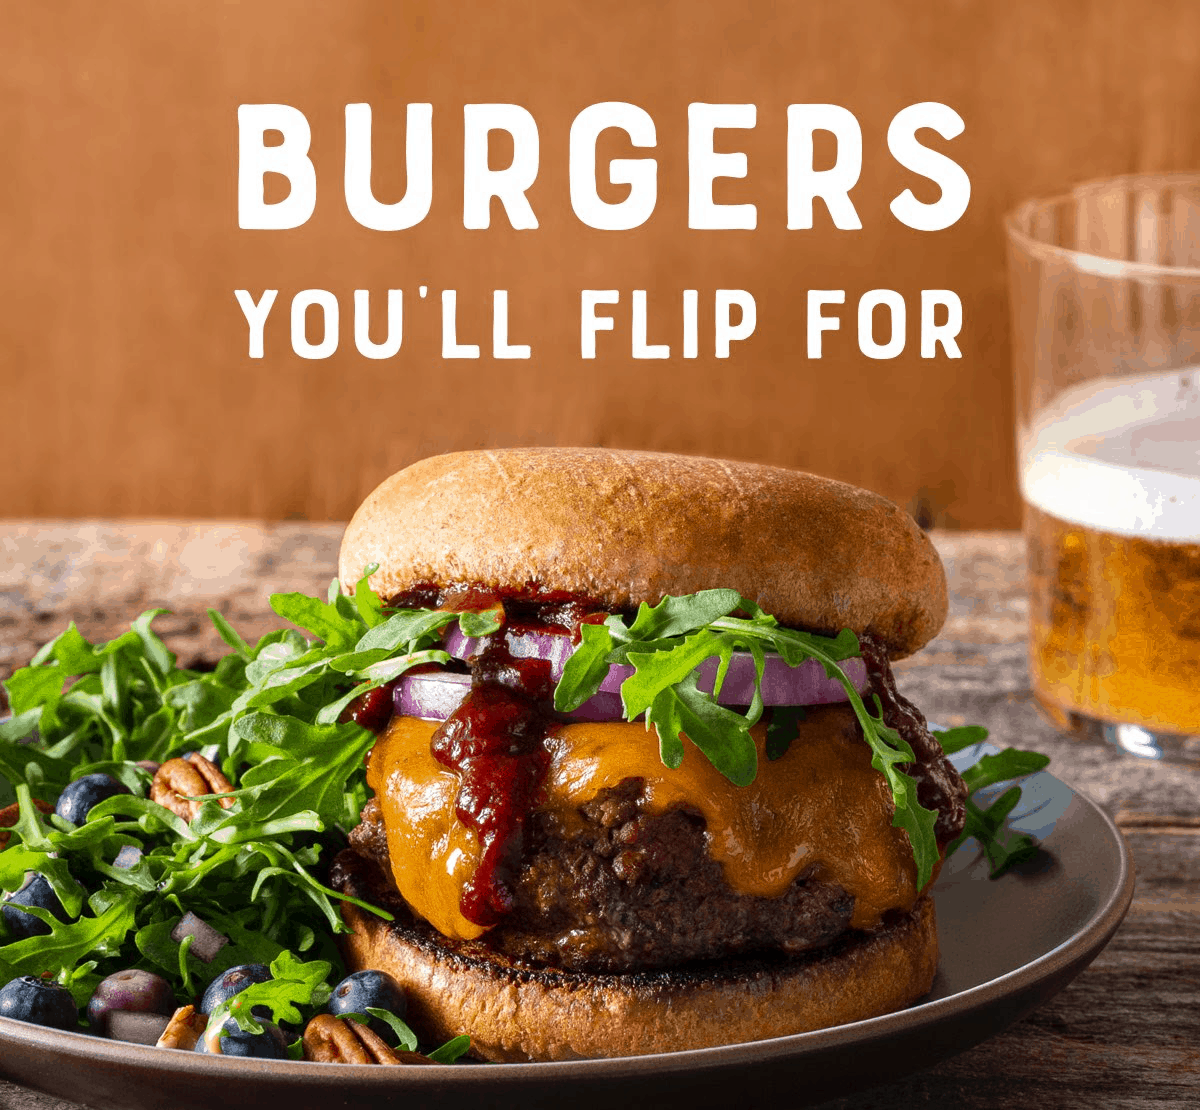 New Sun Basket Burger Menu Available Now + Coupon!